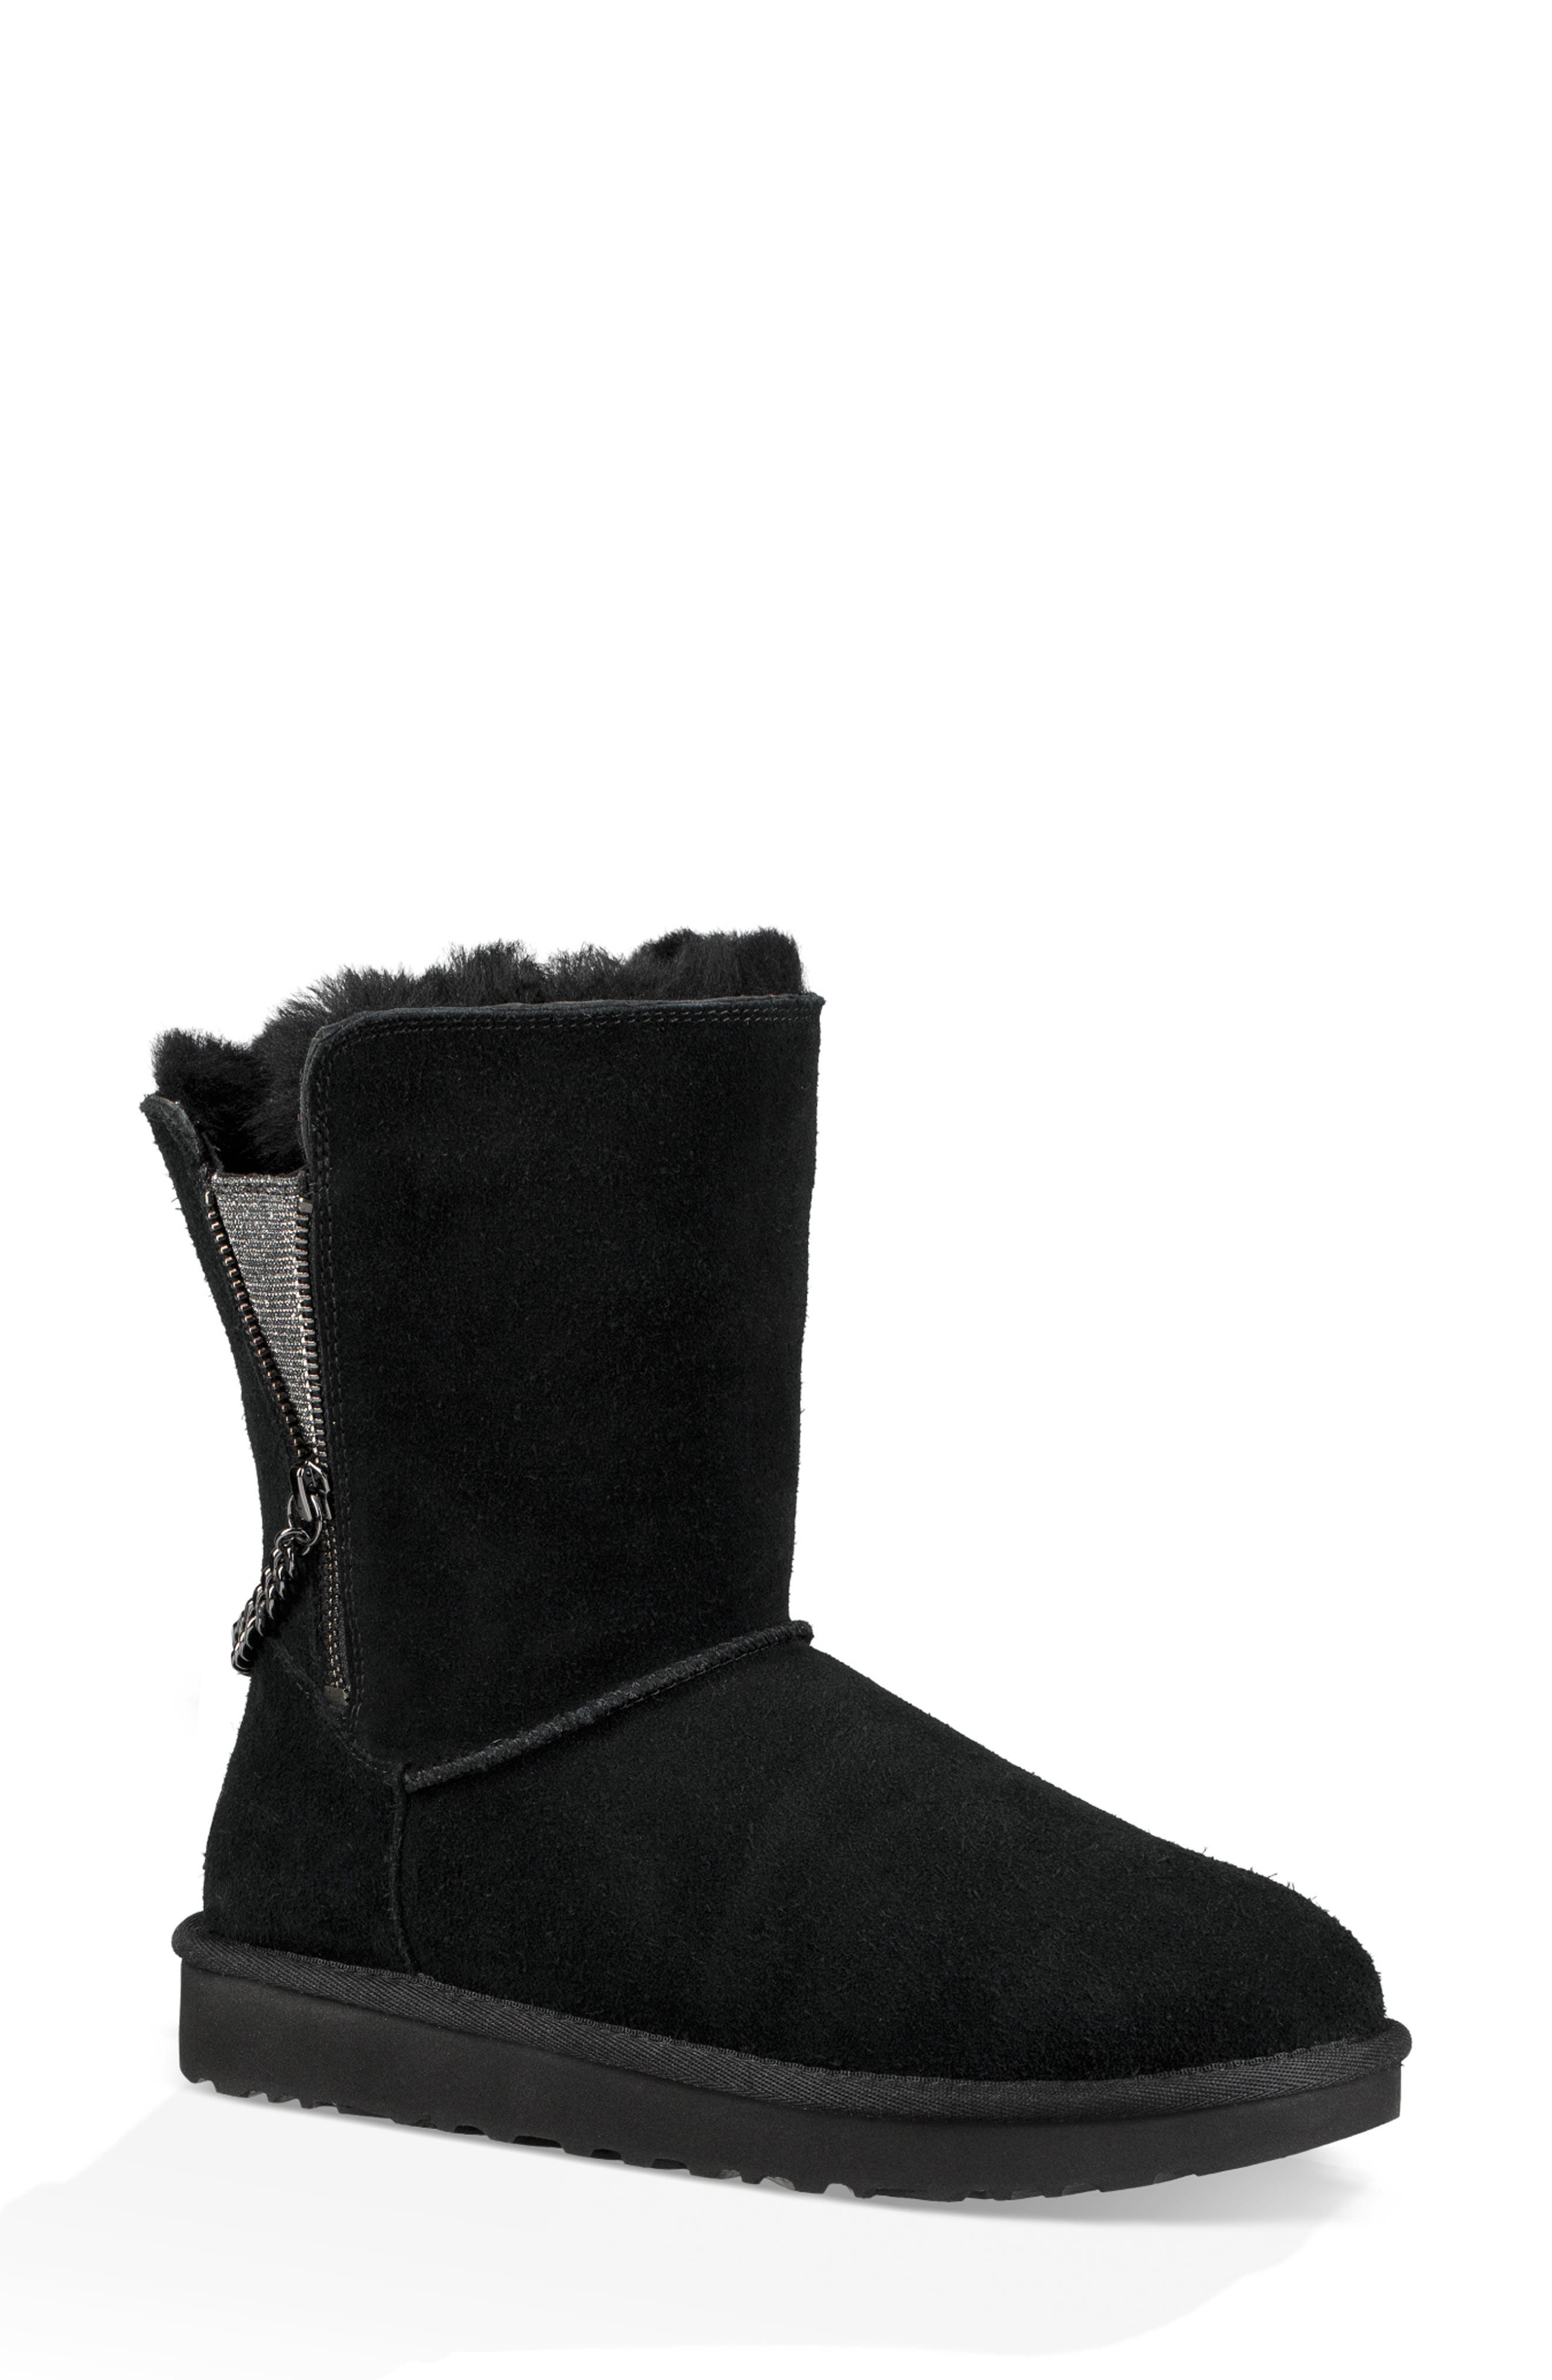 Classic Sparkle Zip Bootie,                             Alternate thumbnail 8, color,                             BLACK SUEDE